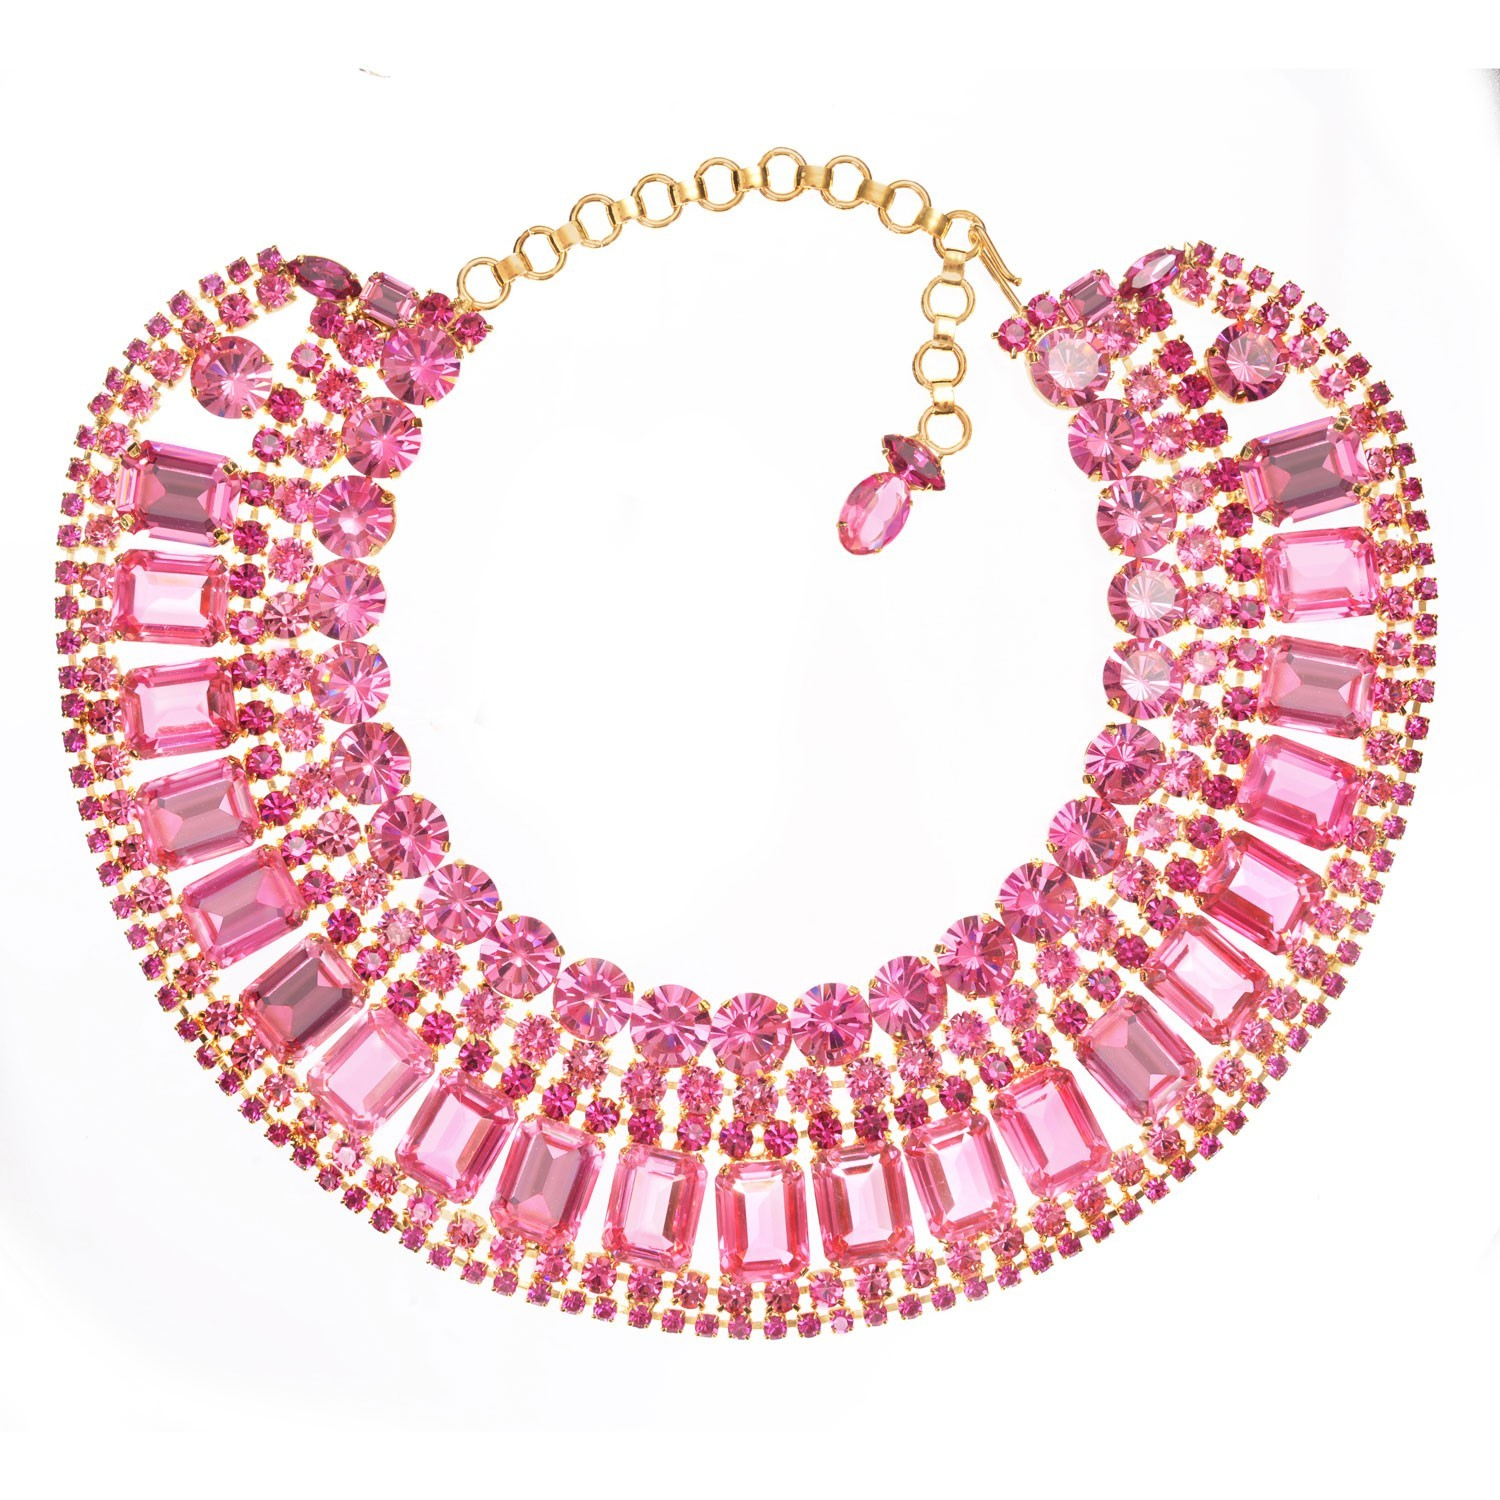 pink long necklace pendant categories necklaces default lg jewelry agate gold kendra in betsy scott